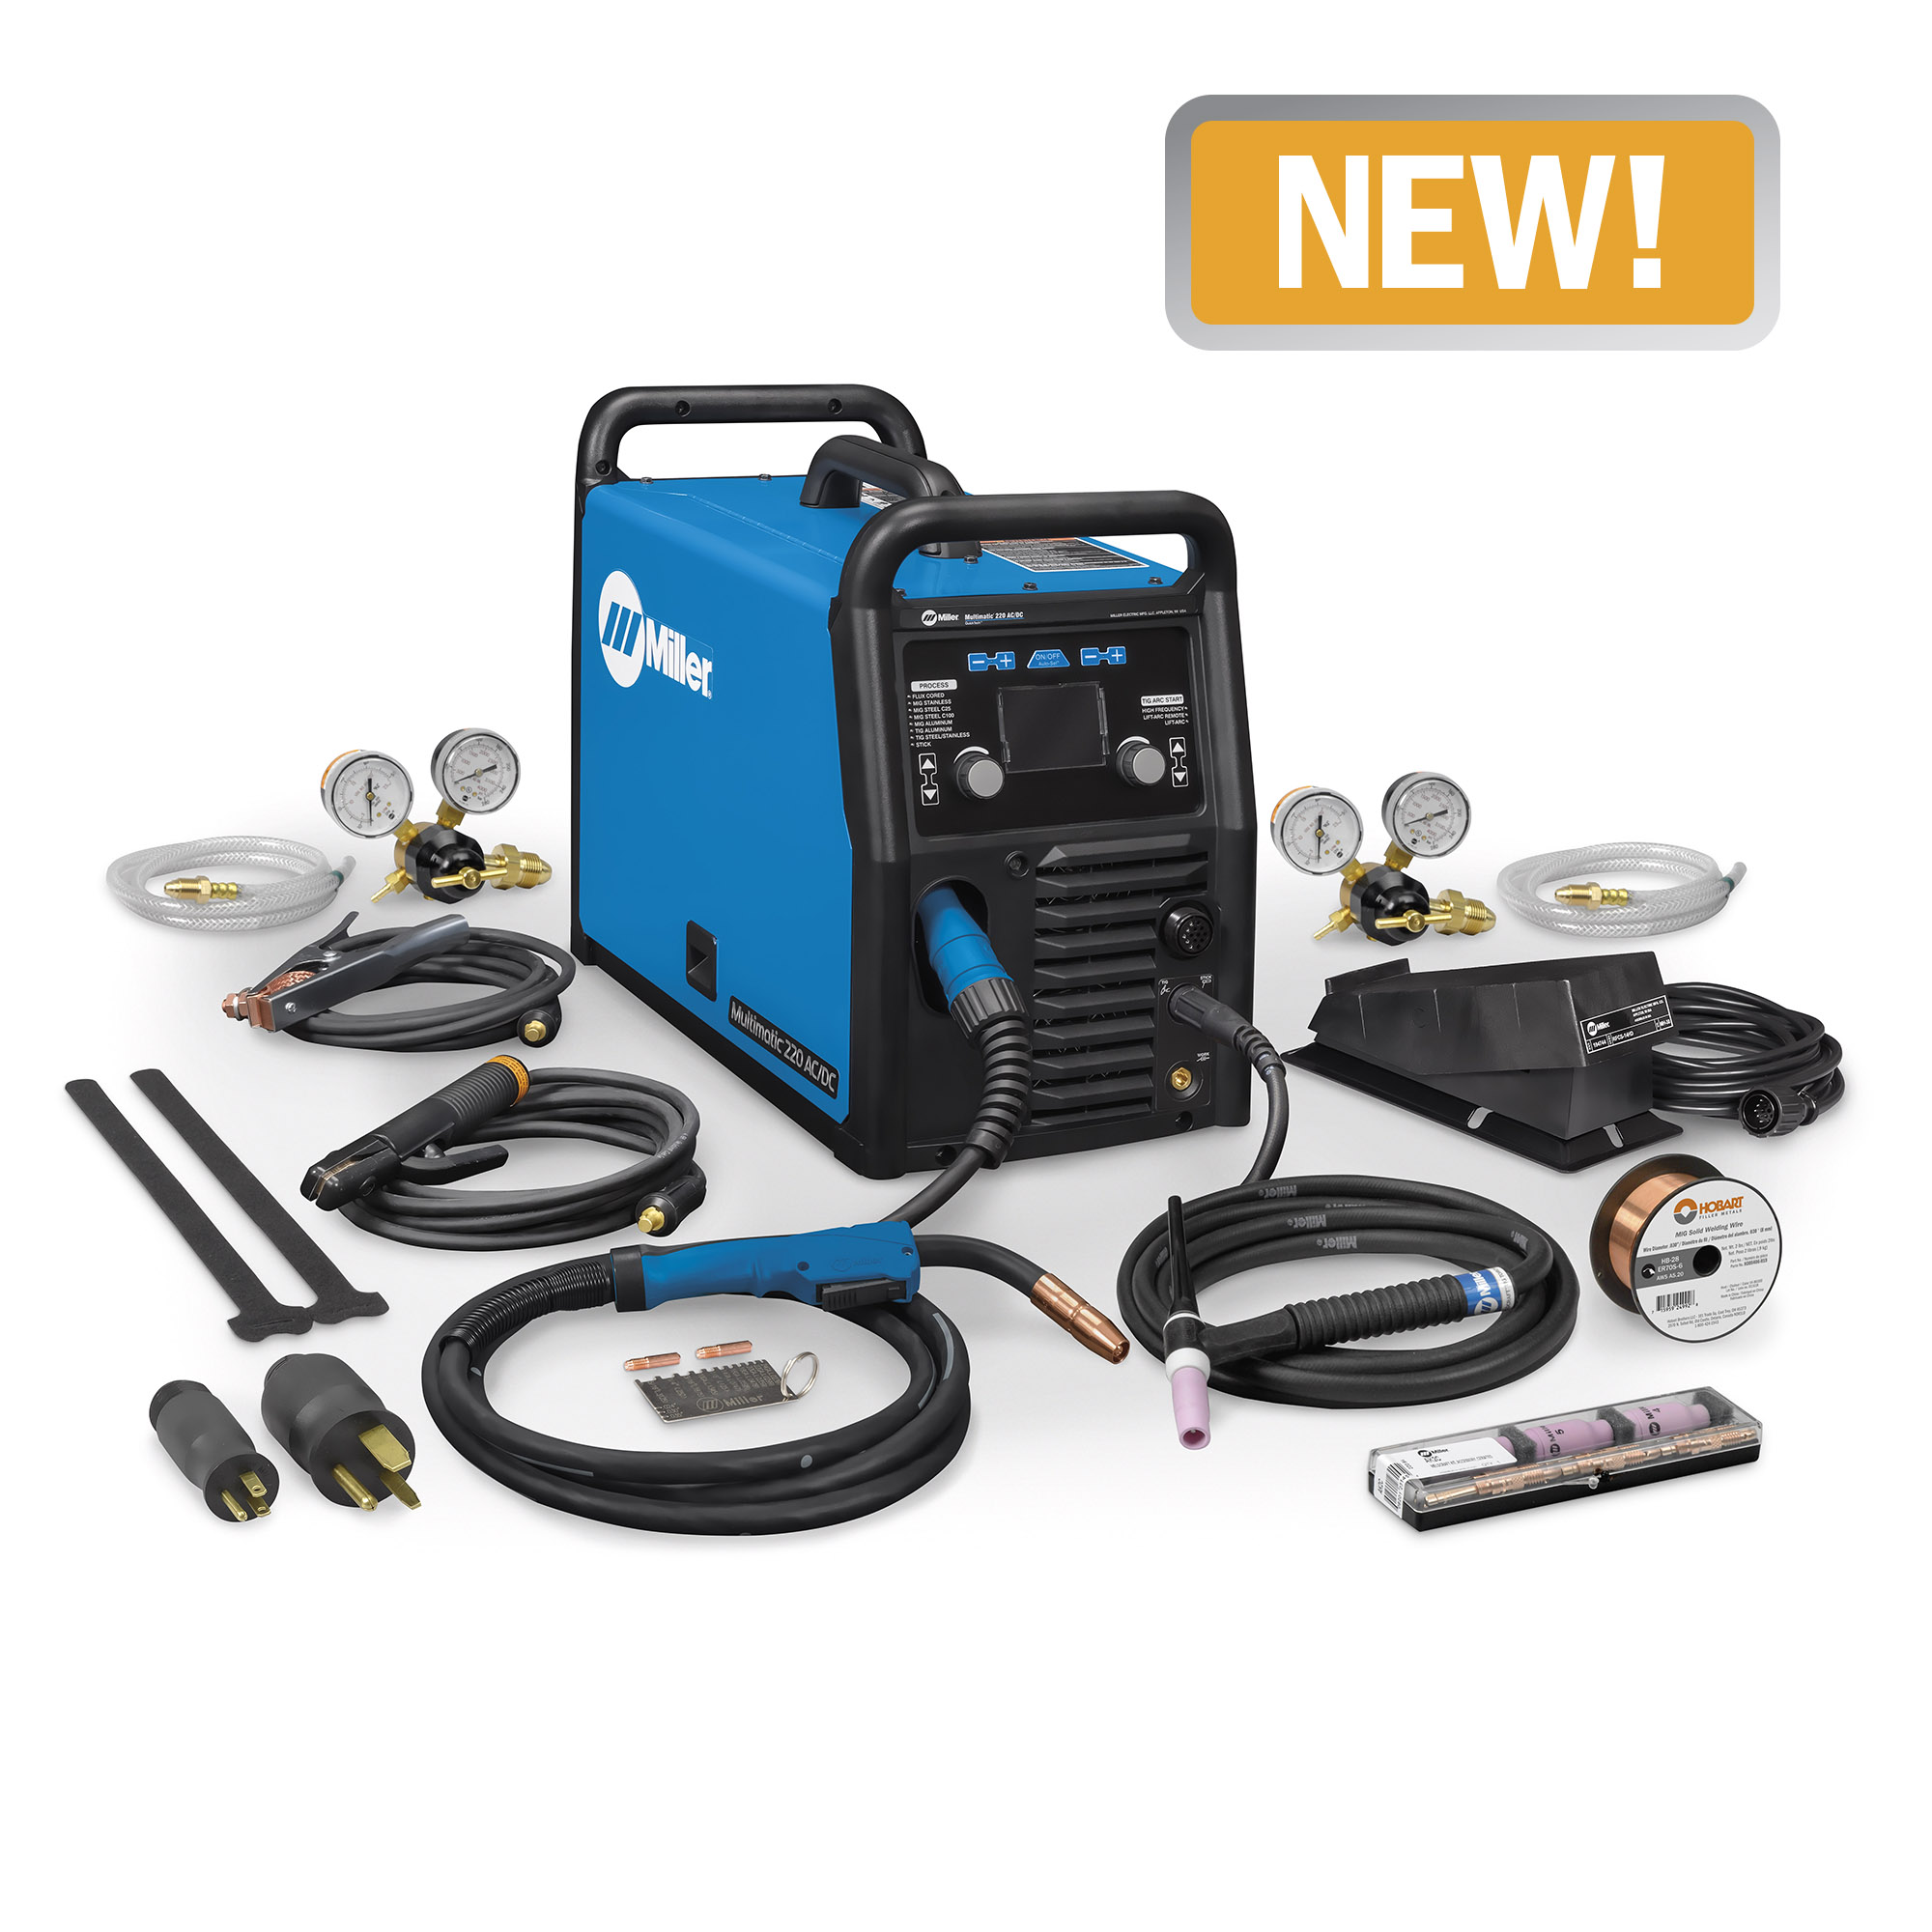 hight resolution of miller multimatic 220 ac dc multiprocess welder with accessories